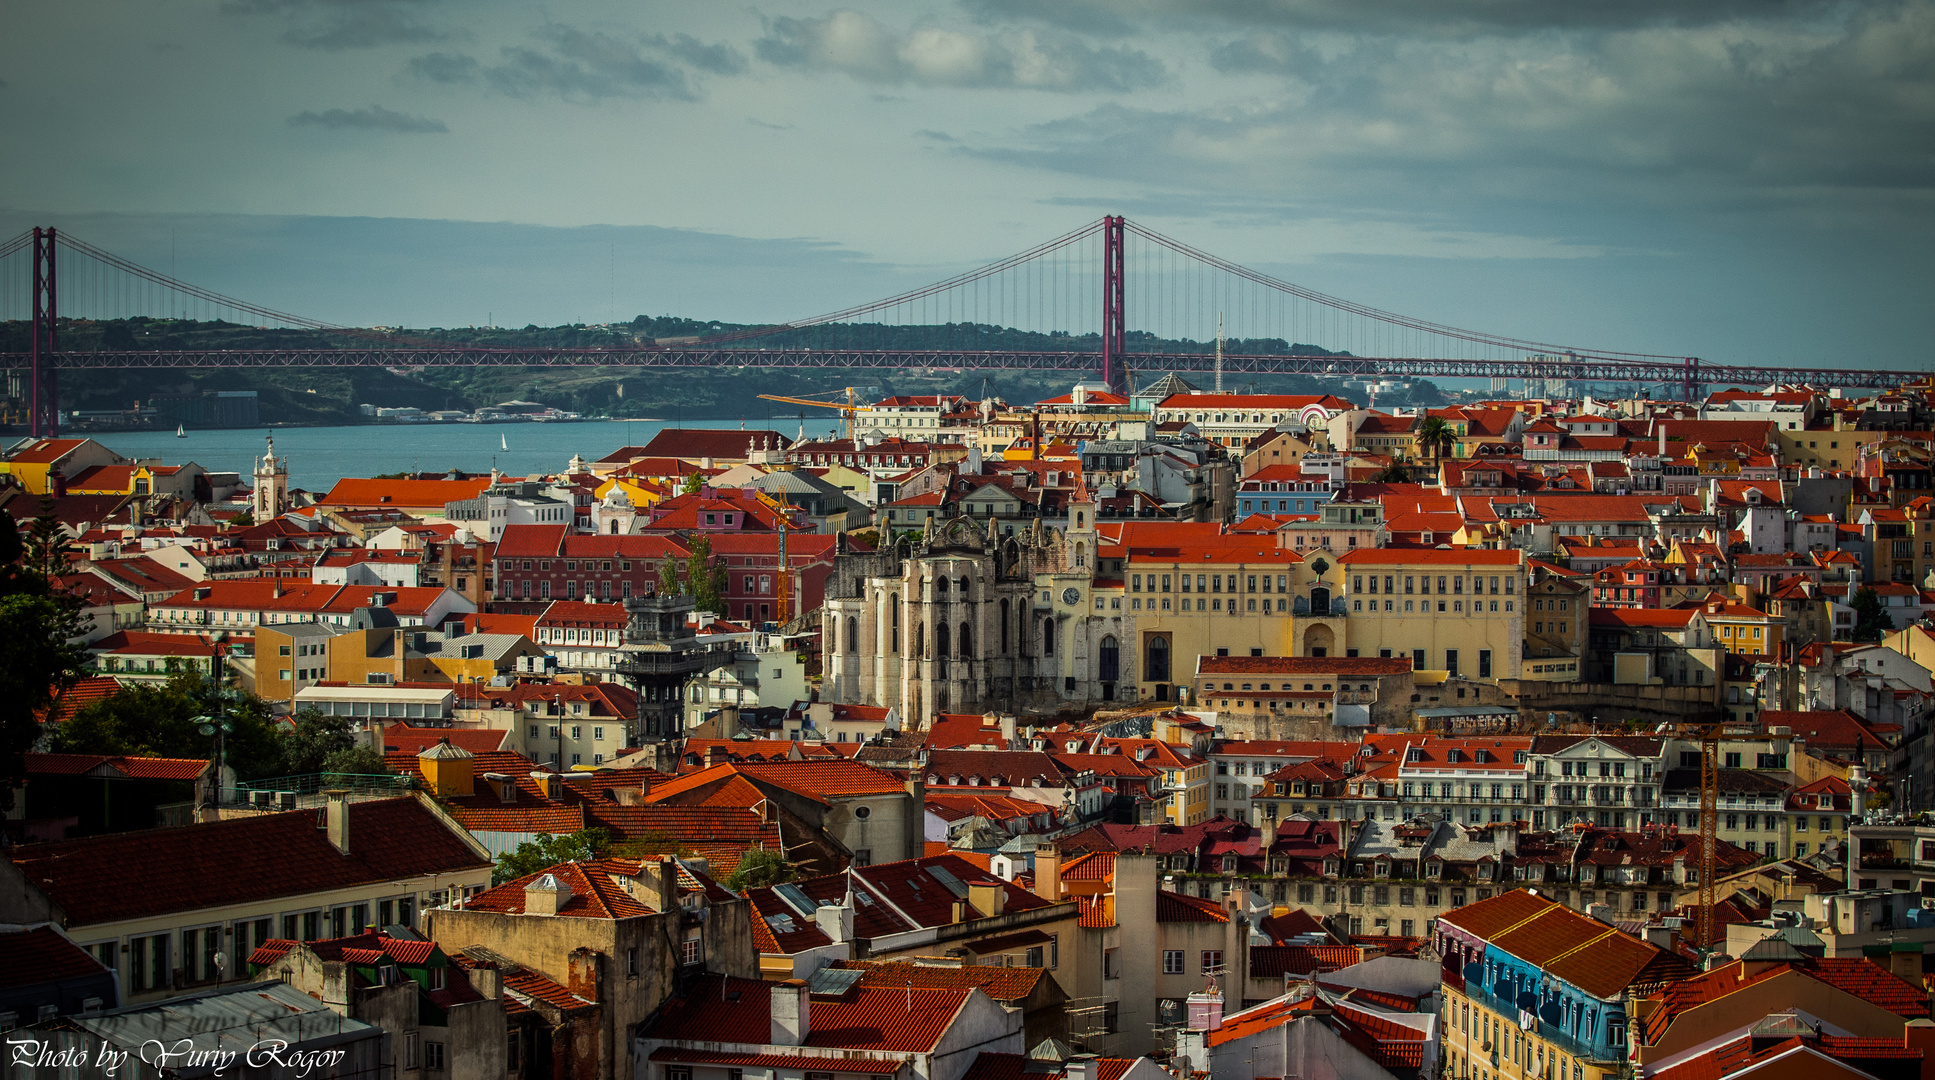 Lisbon (in the distance the 25 Abril Bridge) view from Graça